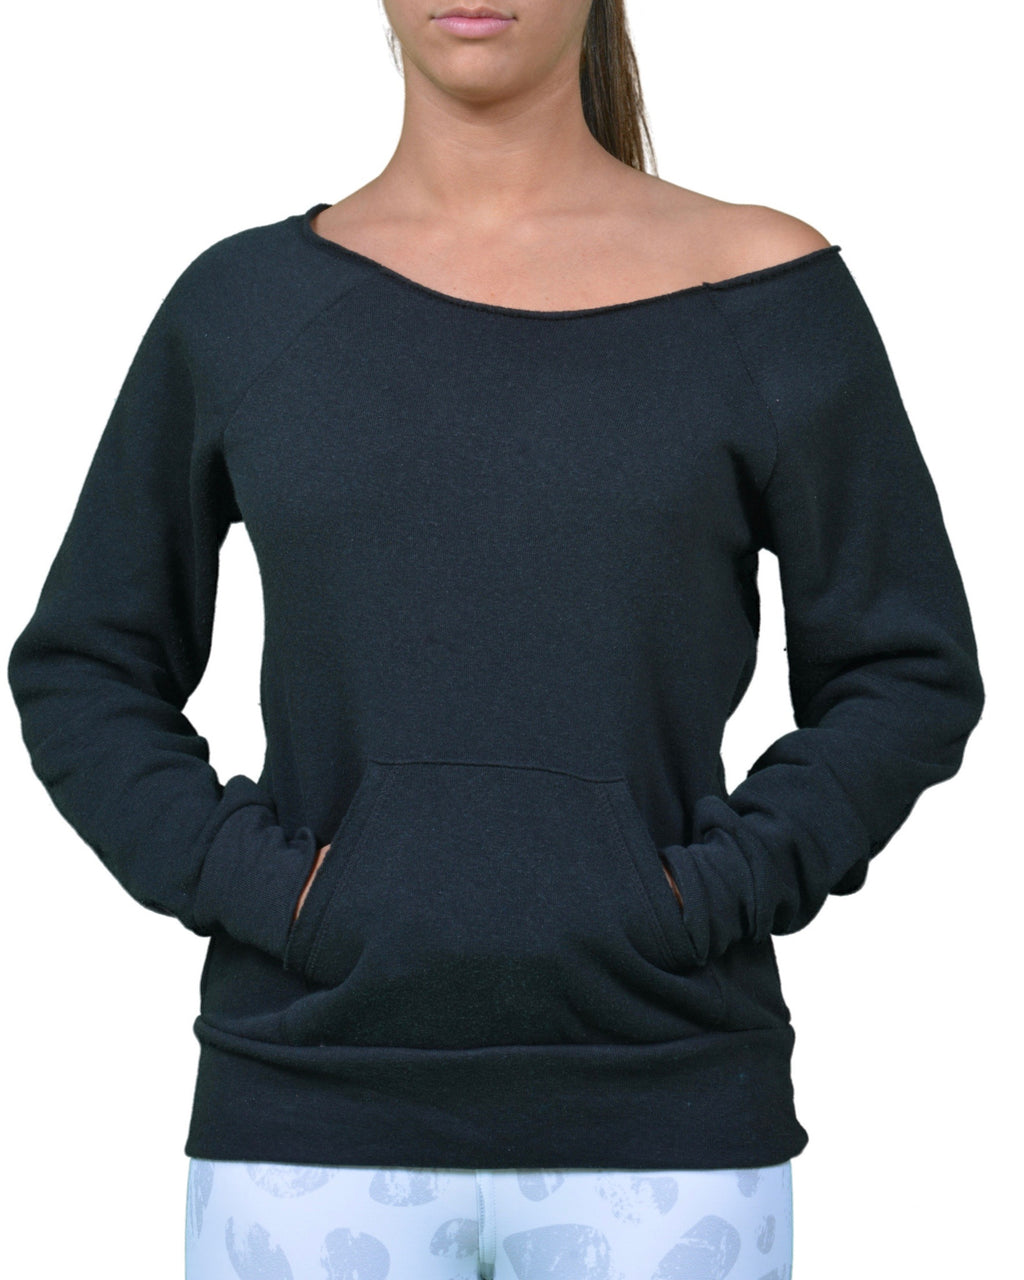 Karma Off The Shoulder Sweatshirt in Black - Final Sale!